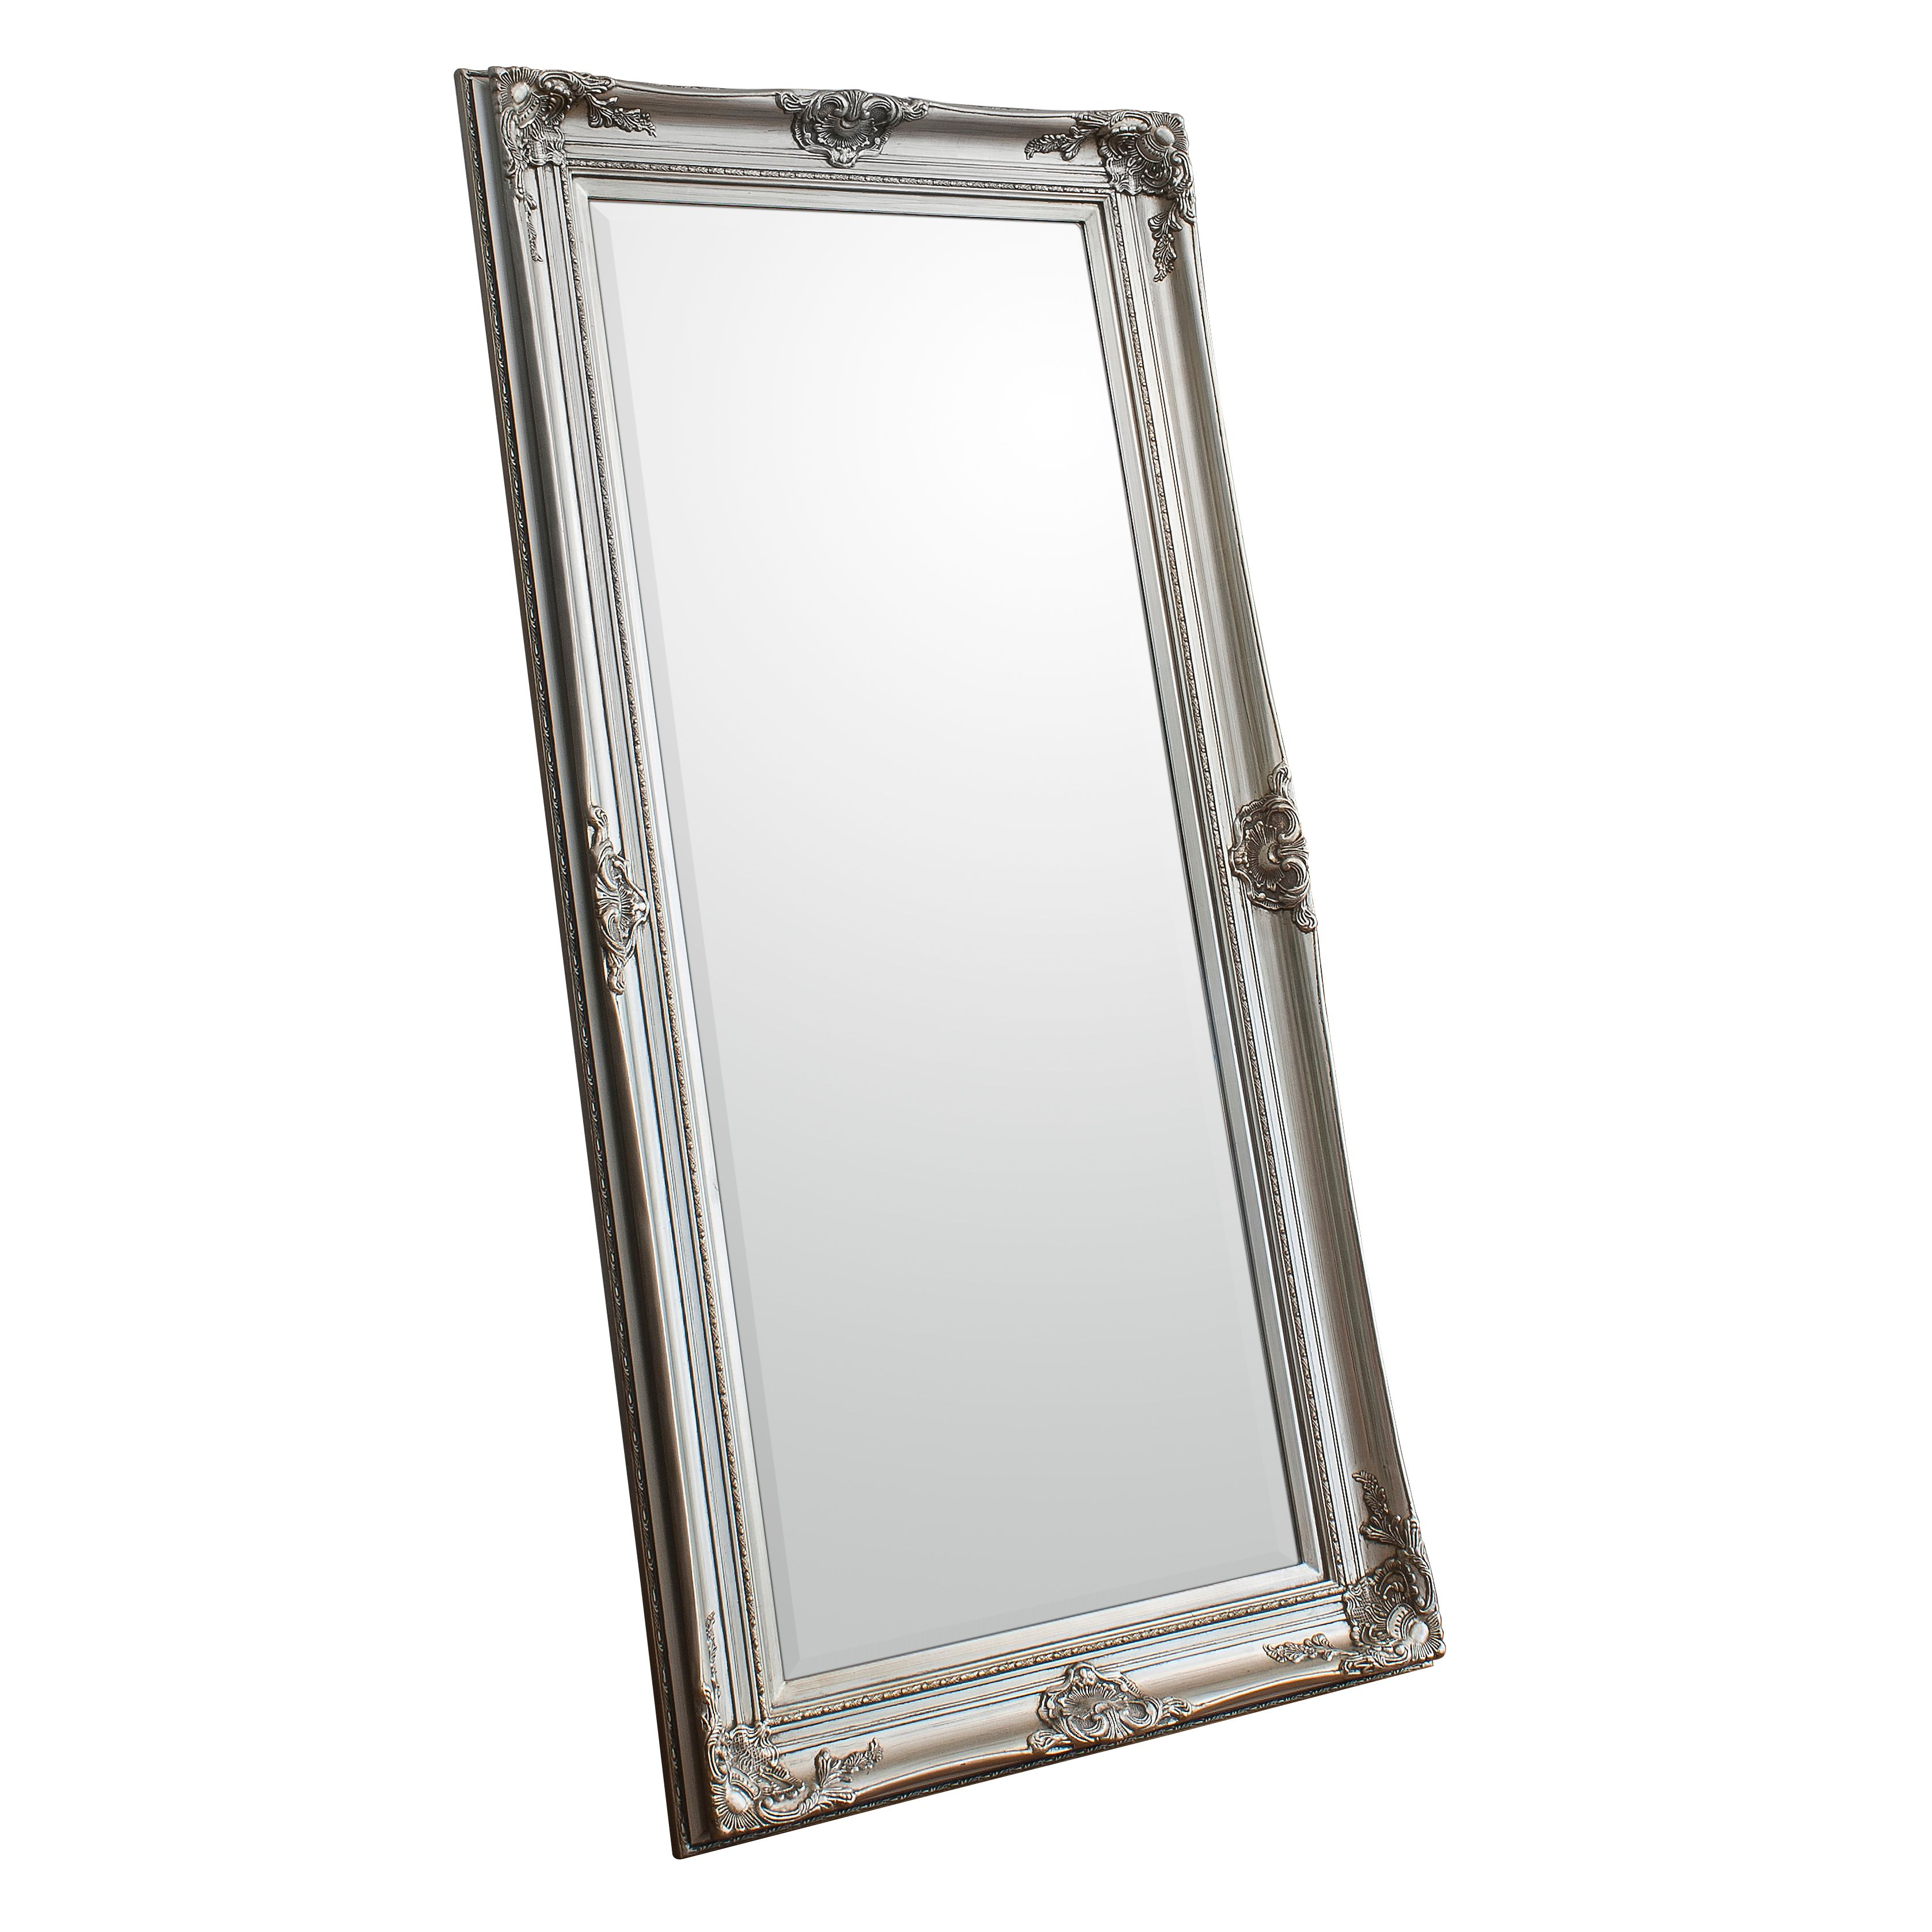 Harrow leaner mirror 169 x 84cm